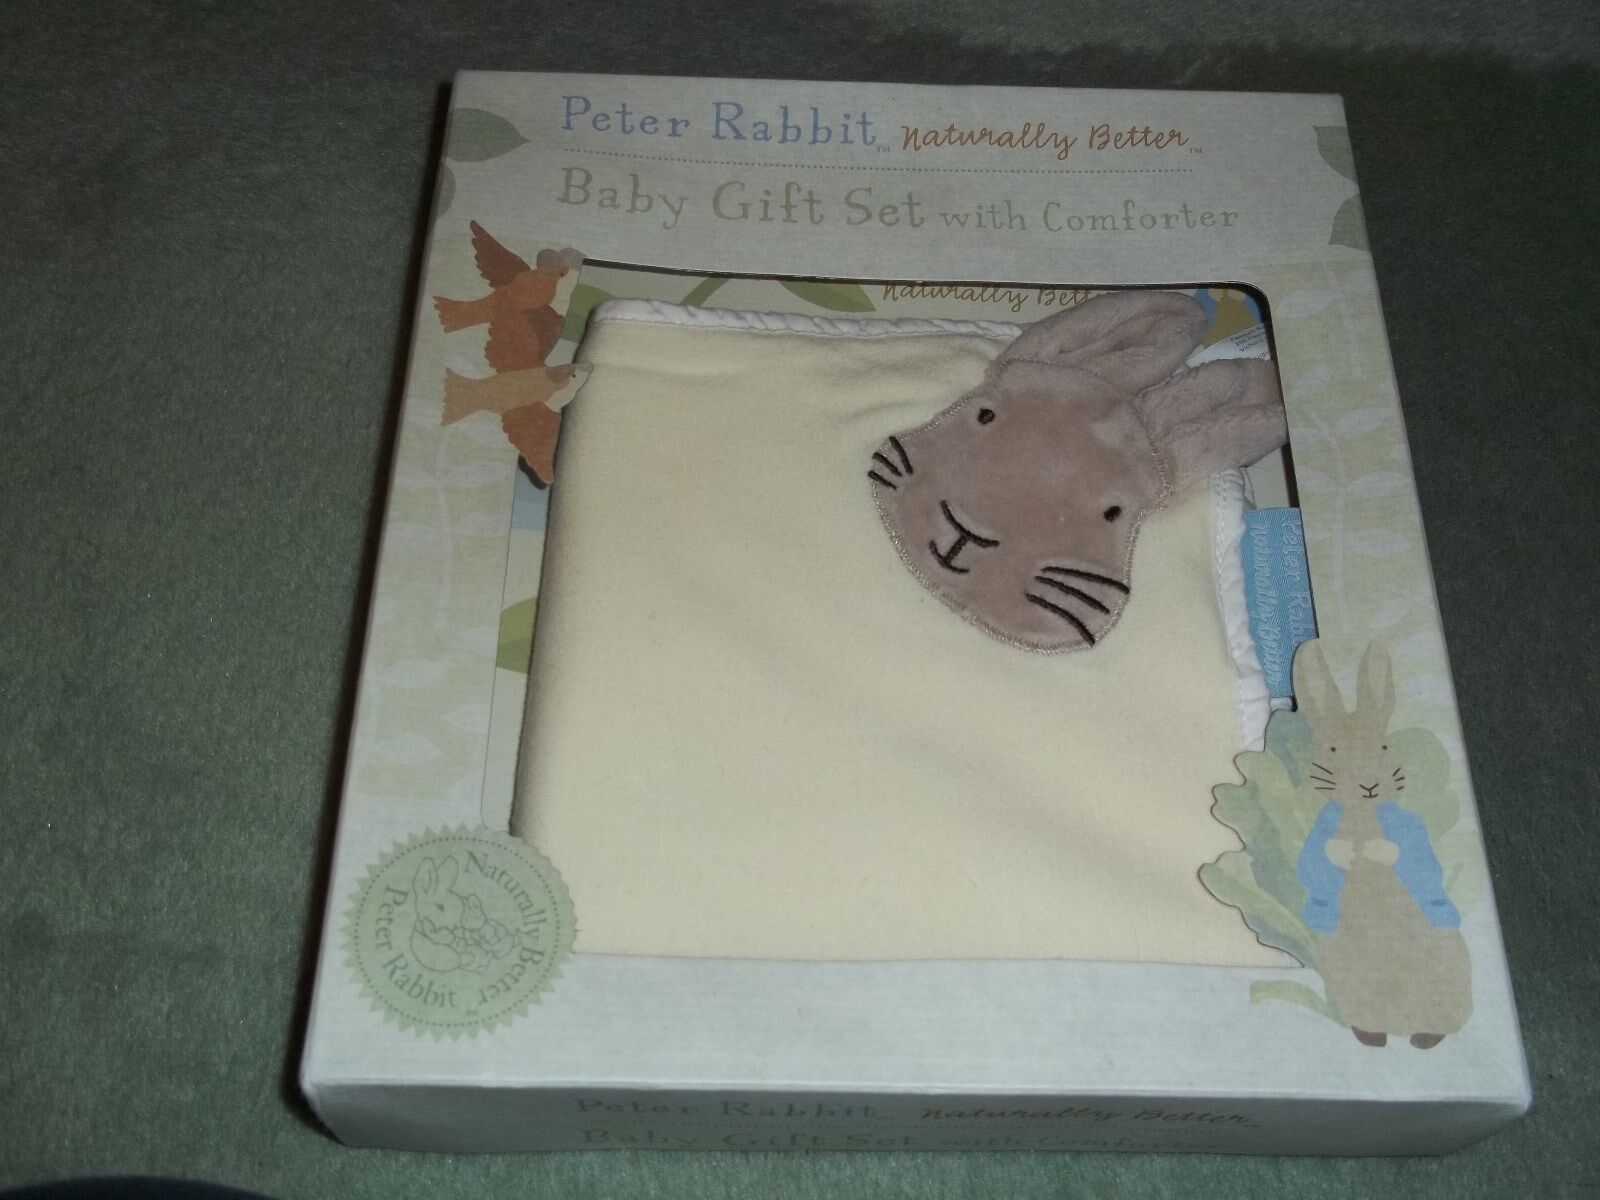 PETER RABBIT    NATURALLY BETTER  BABY GIFT SET WITH COMFORTER 7c2f85